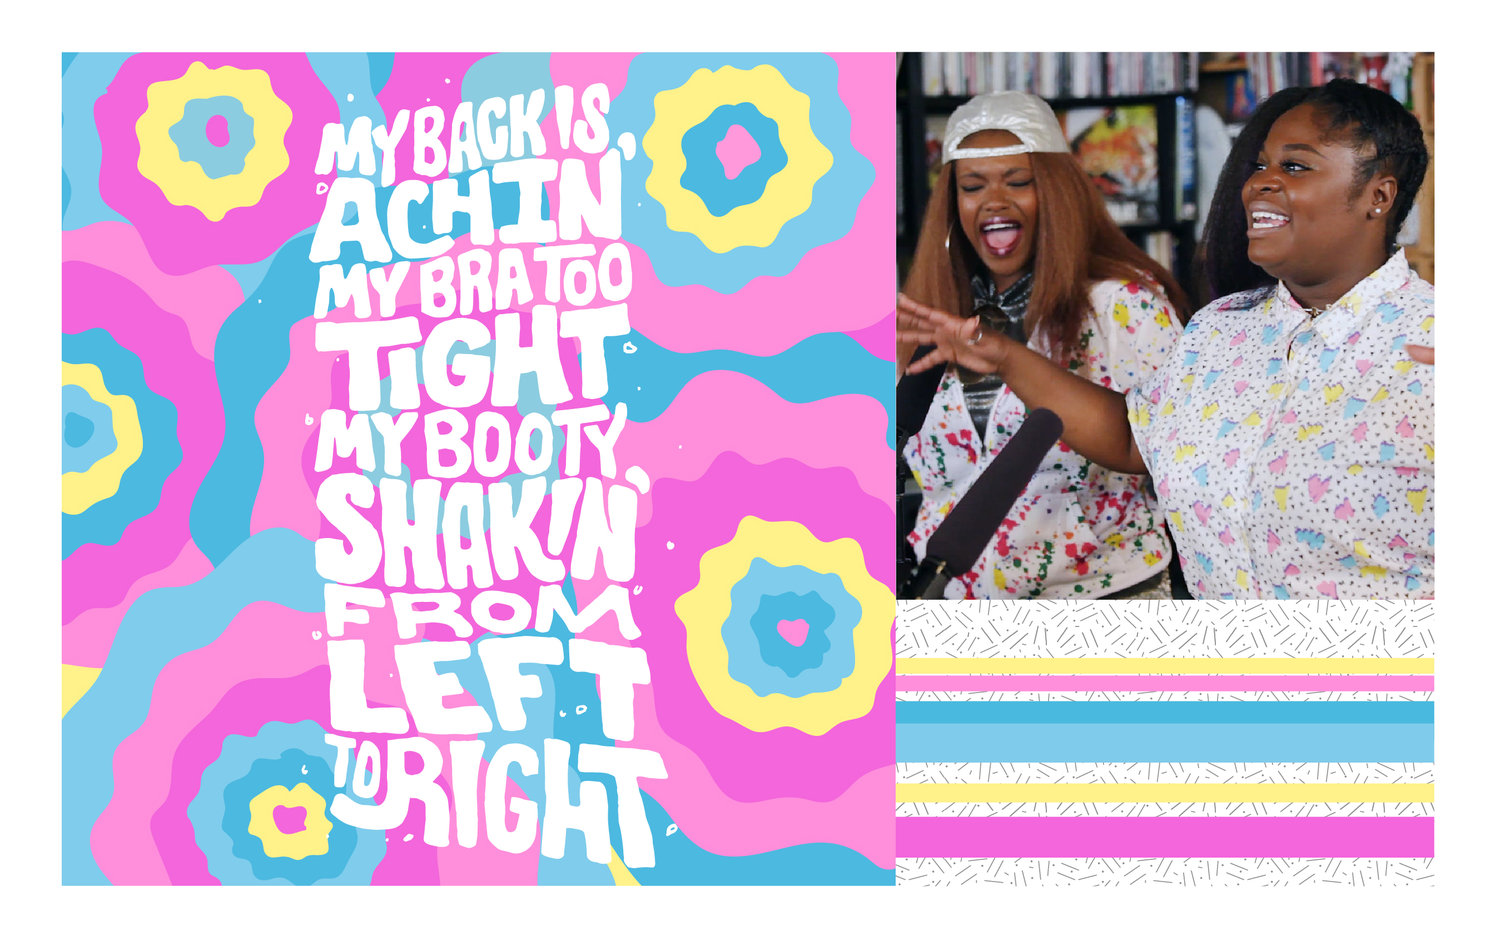 Lyrics from Tank And The Bangas' song 'Quick'. Images and color inspo screen grabbed from their celebratory performance as NPR'S 2017 Tiny Desk winners. Their storytelling, energy, and absolute love for music is amazing.